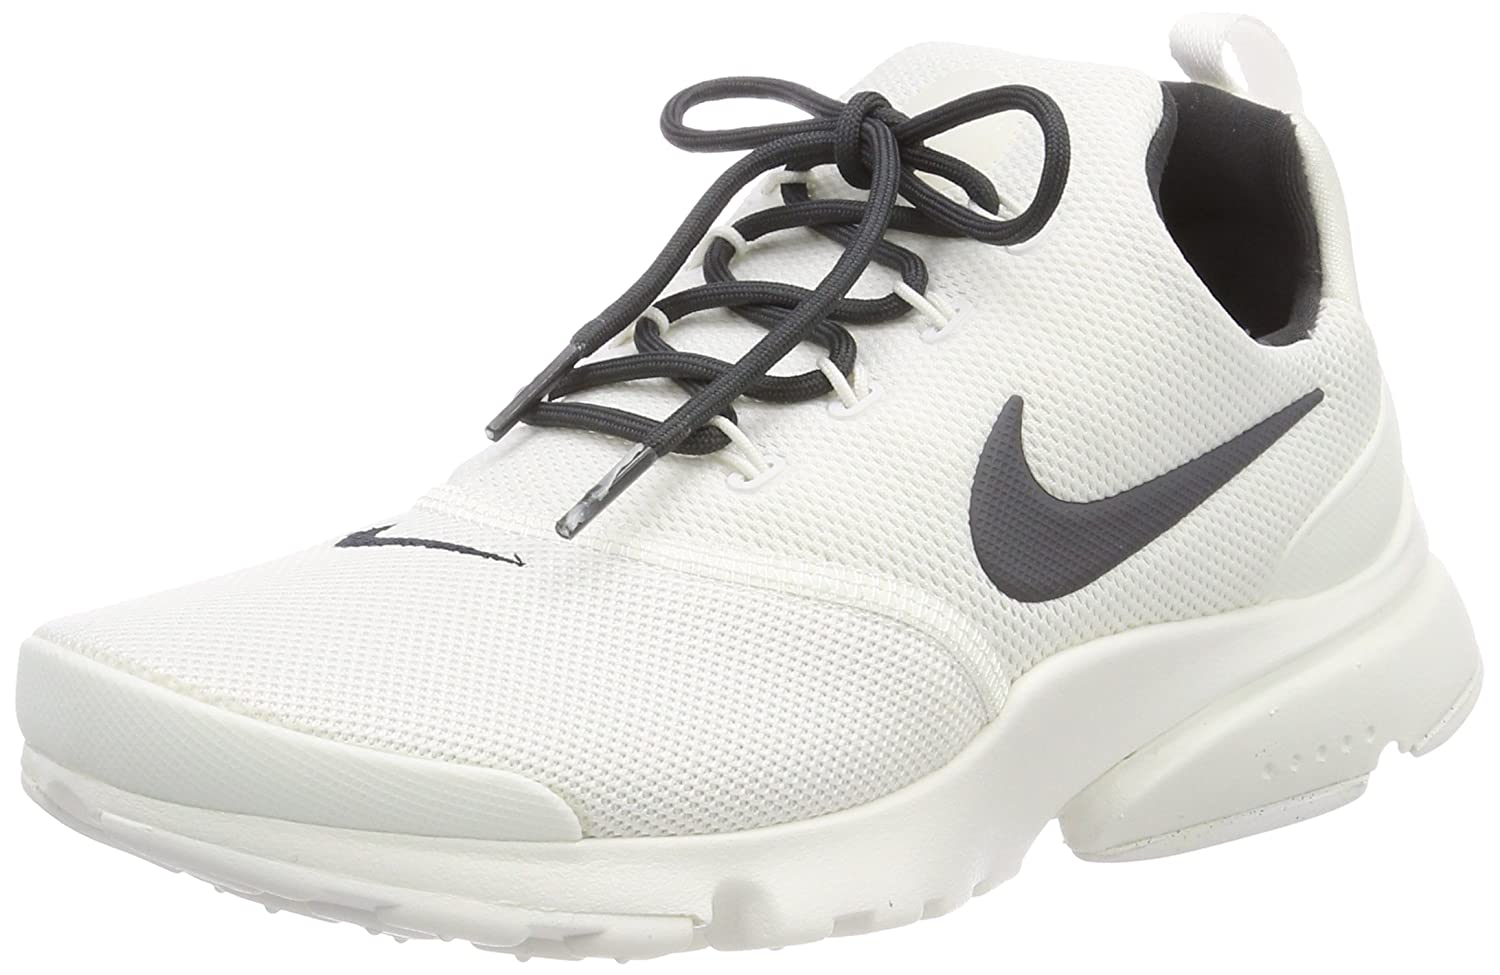 pretty nice f8d3a 099cf Nike Women's Presto Fly Running Shoes